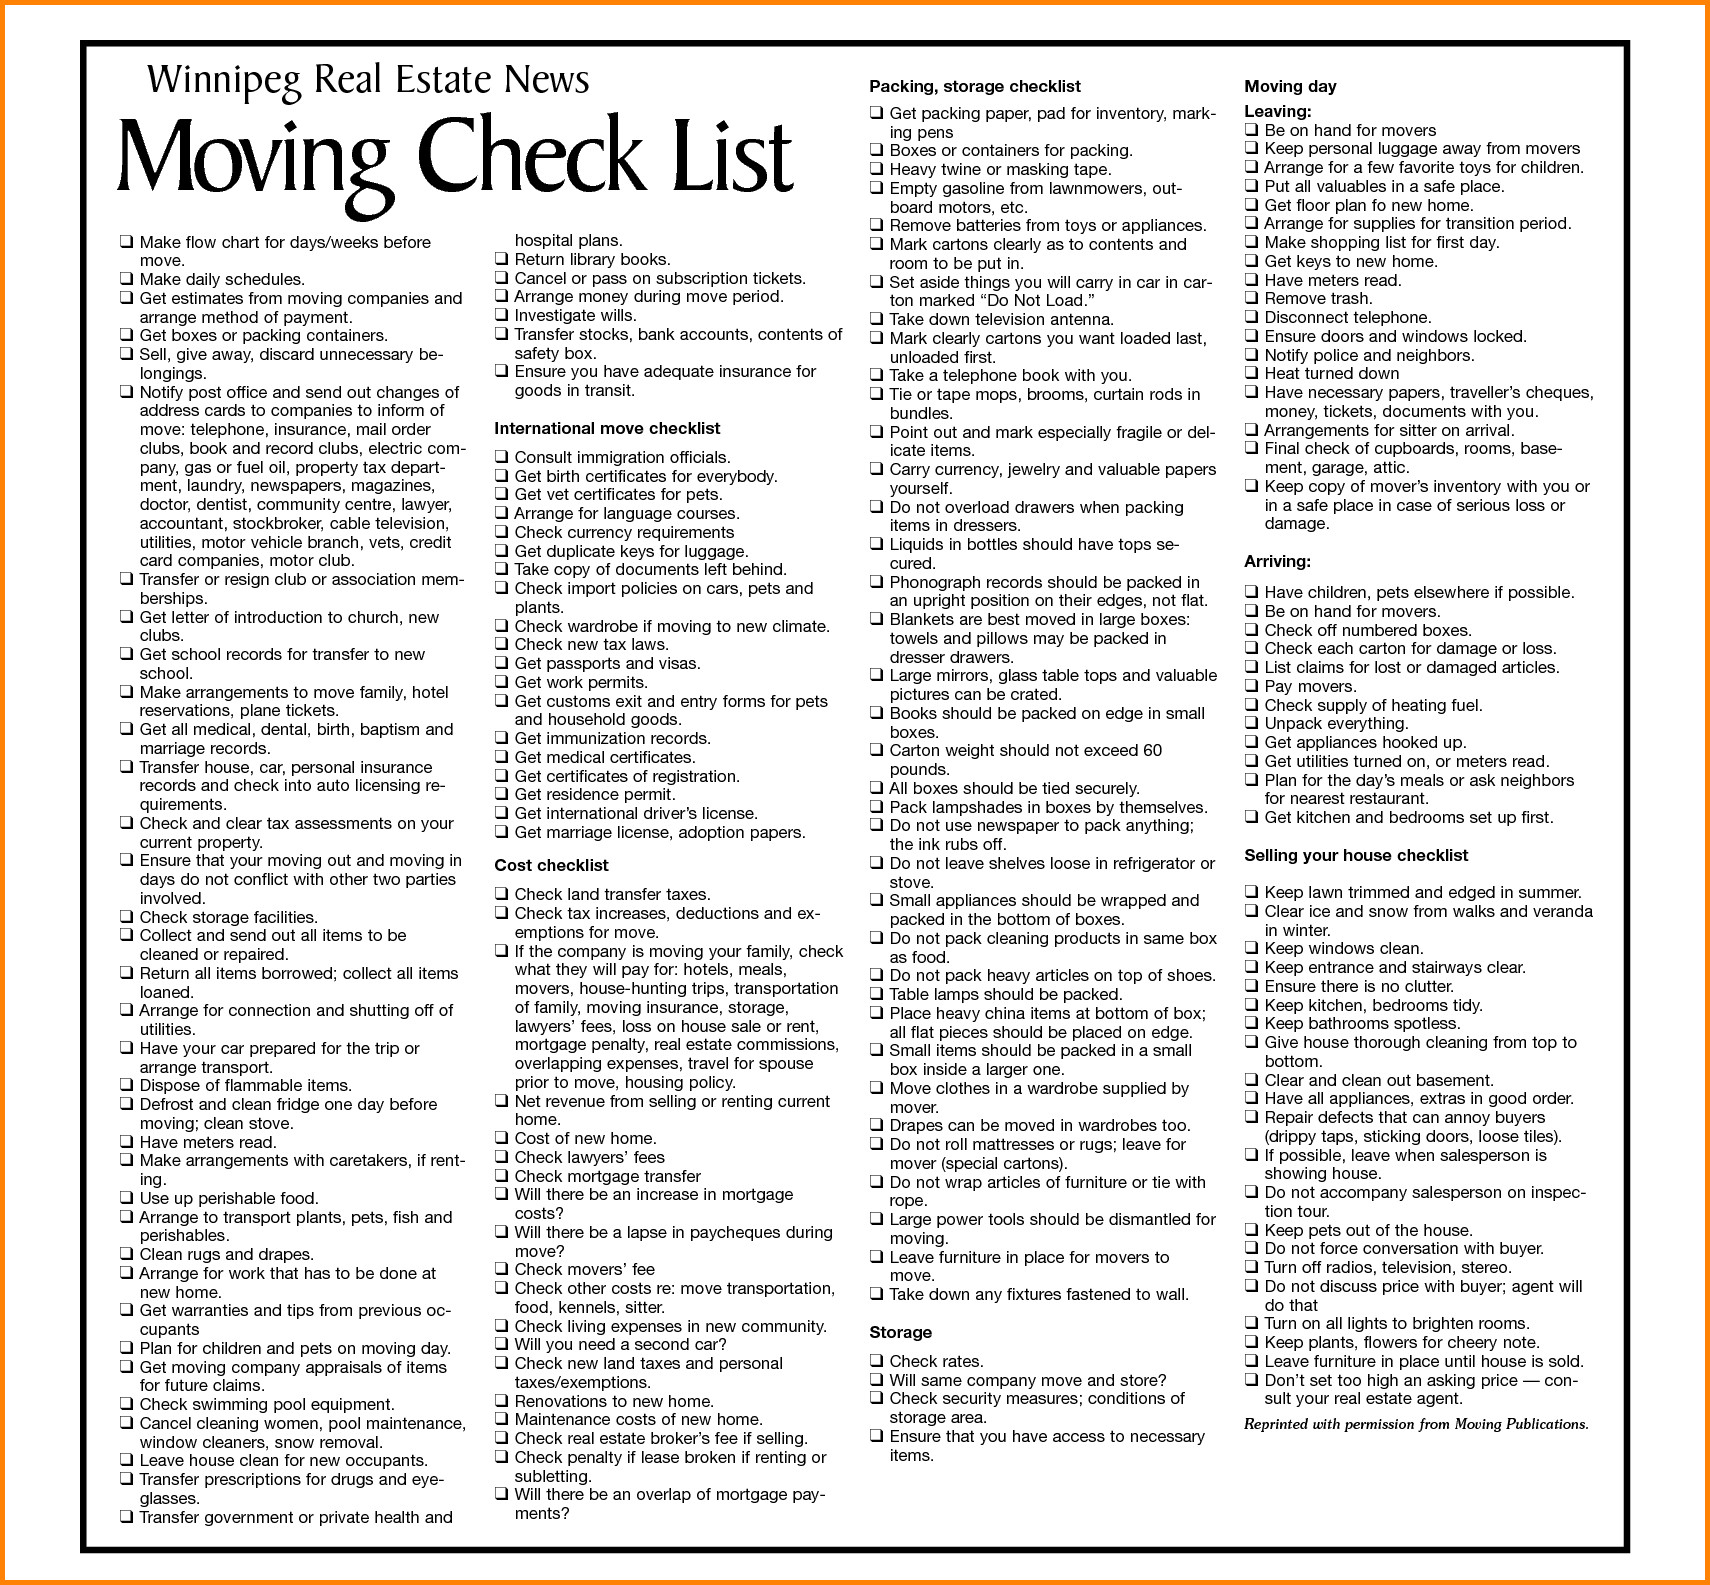 Contents Insurance Checklist Spreadsheet Within Business Moving Checklist Template Fresh Moving Checklist